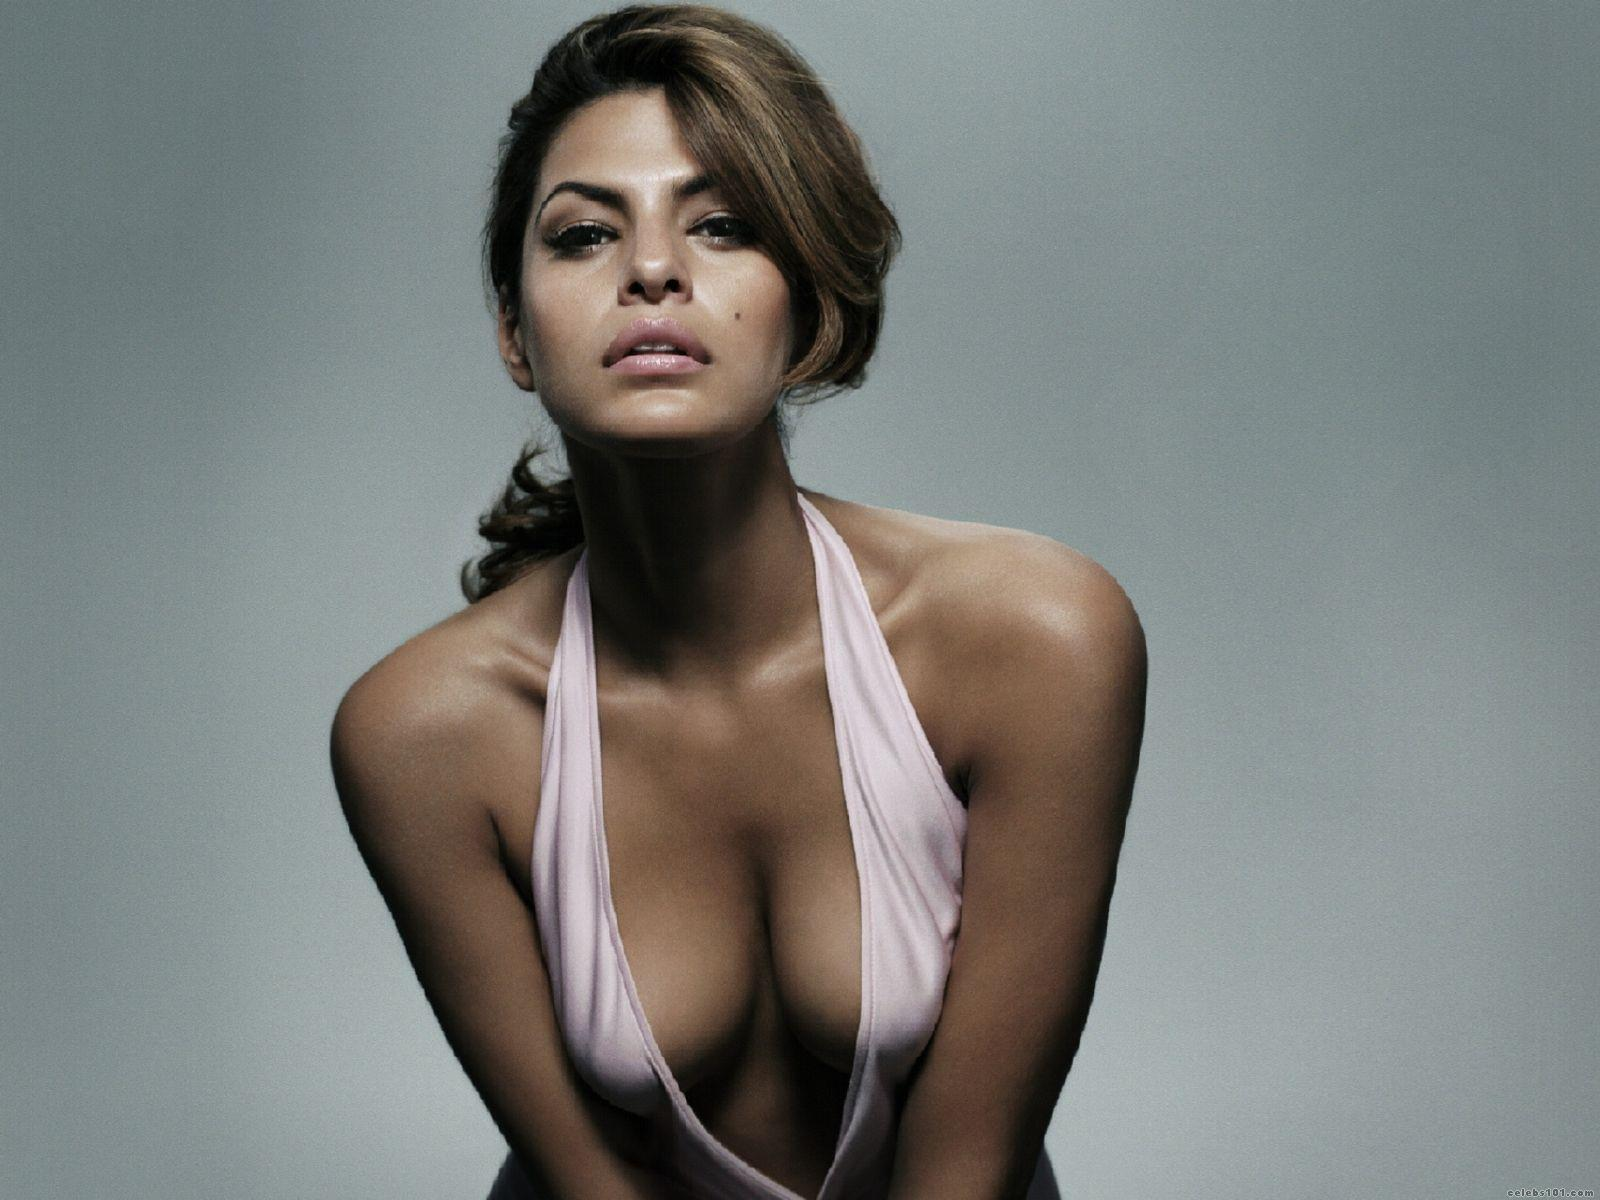 Eva Mendes eva mendes 4729588 1600 1200%25252Belisha cuthbert bikini beach nude sexy hot gallery pictures nude girls sexy girls on beach topless girls nude ass nude boobs sexy bra blue bra beach girls latest dub ... the person listed here is currently on the state's offenders registry.